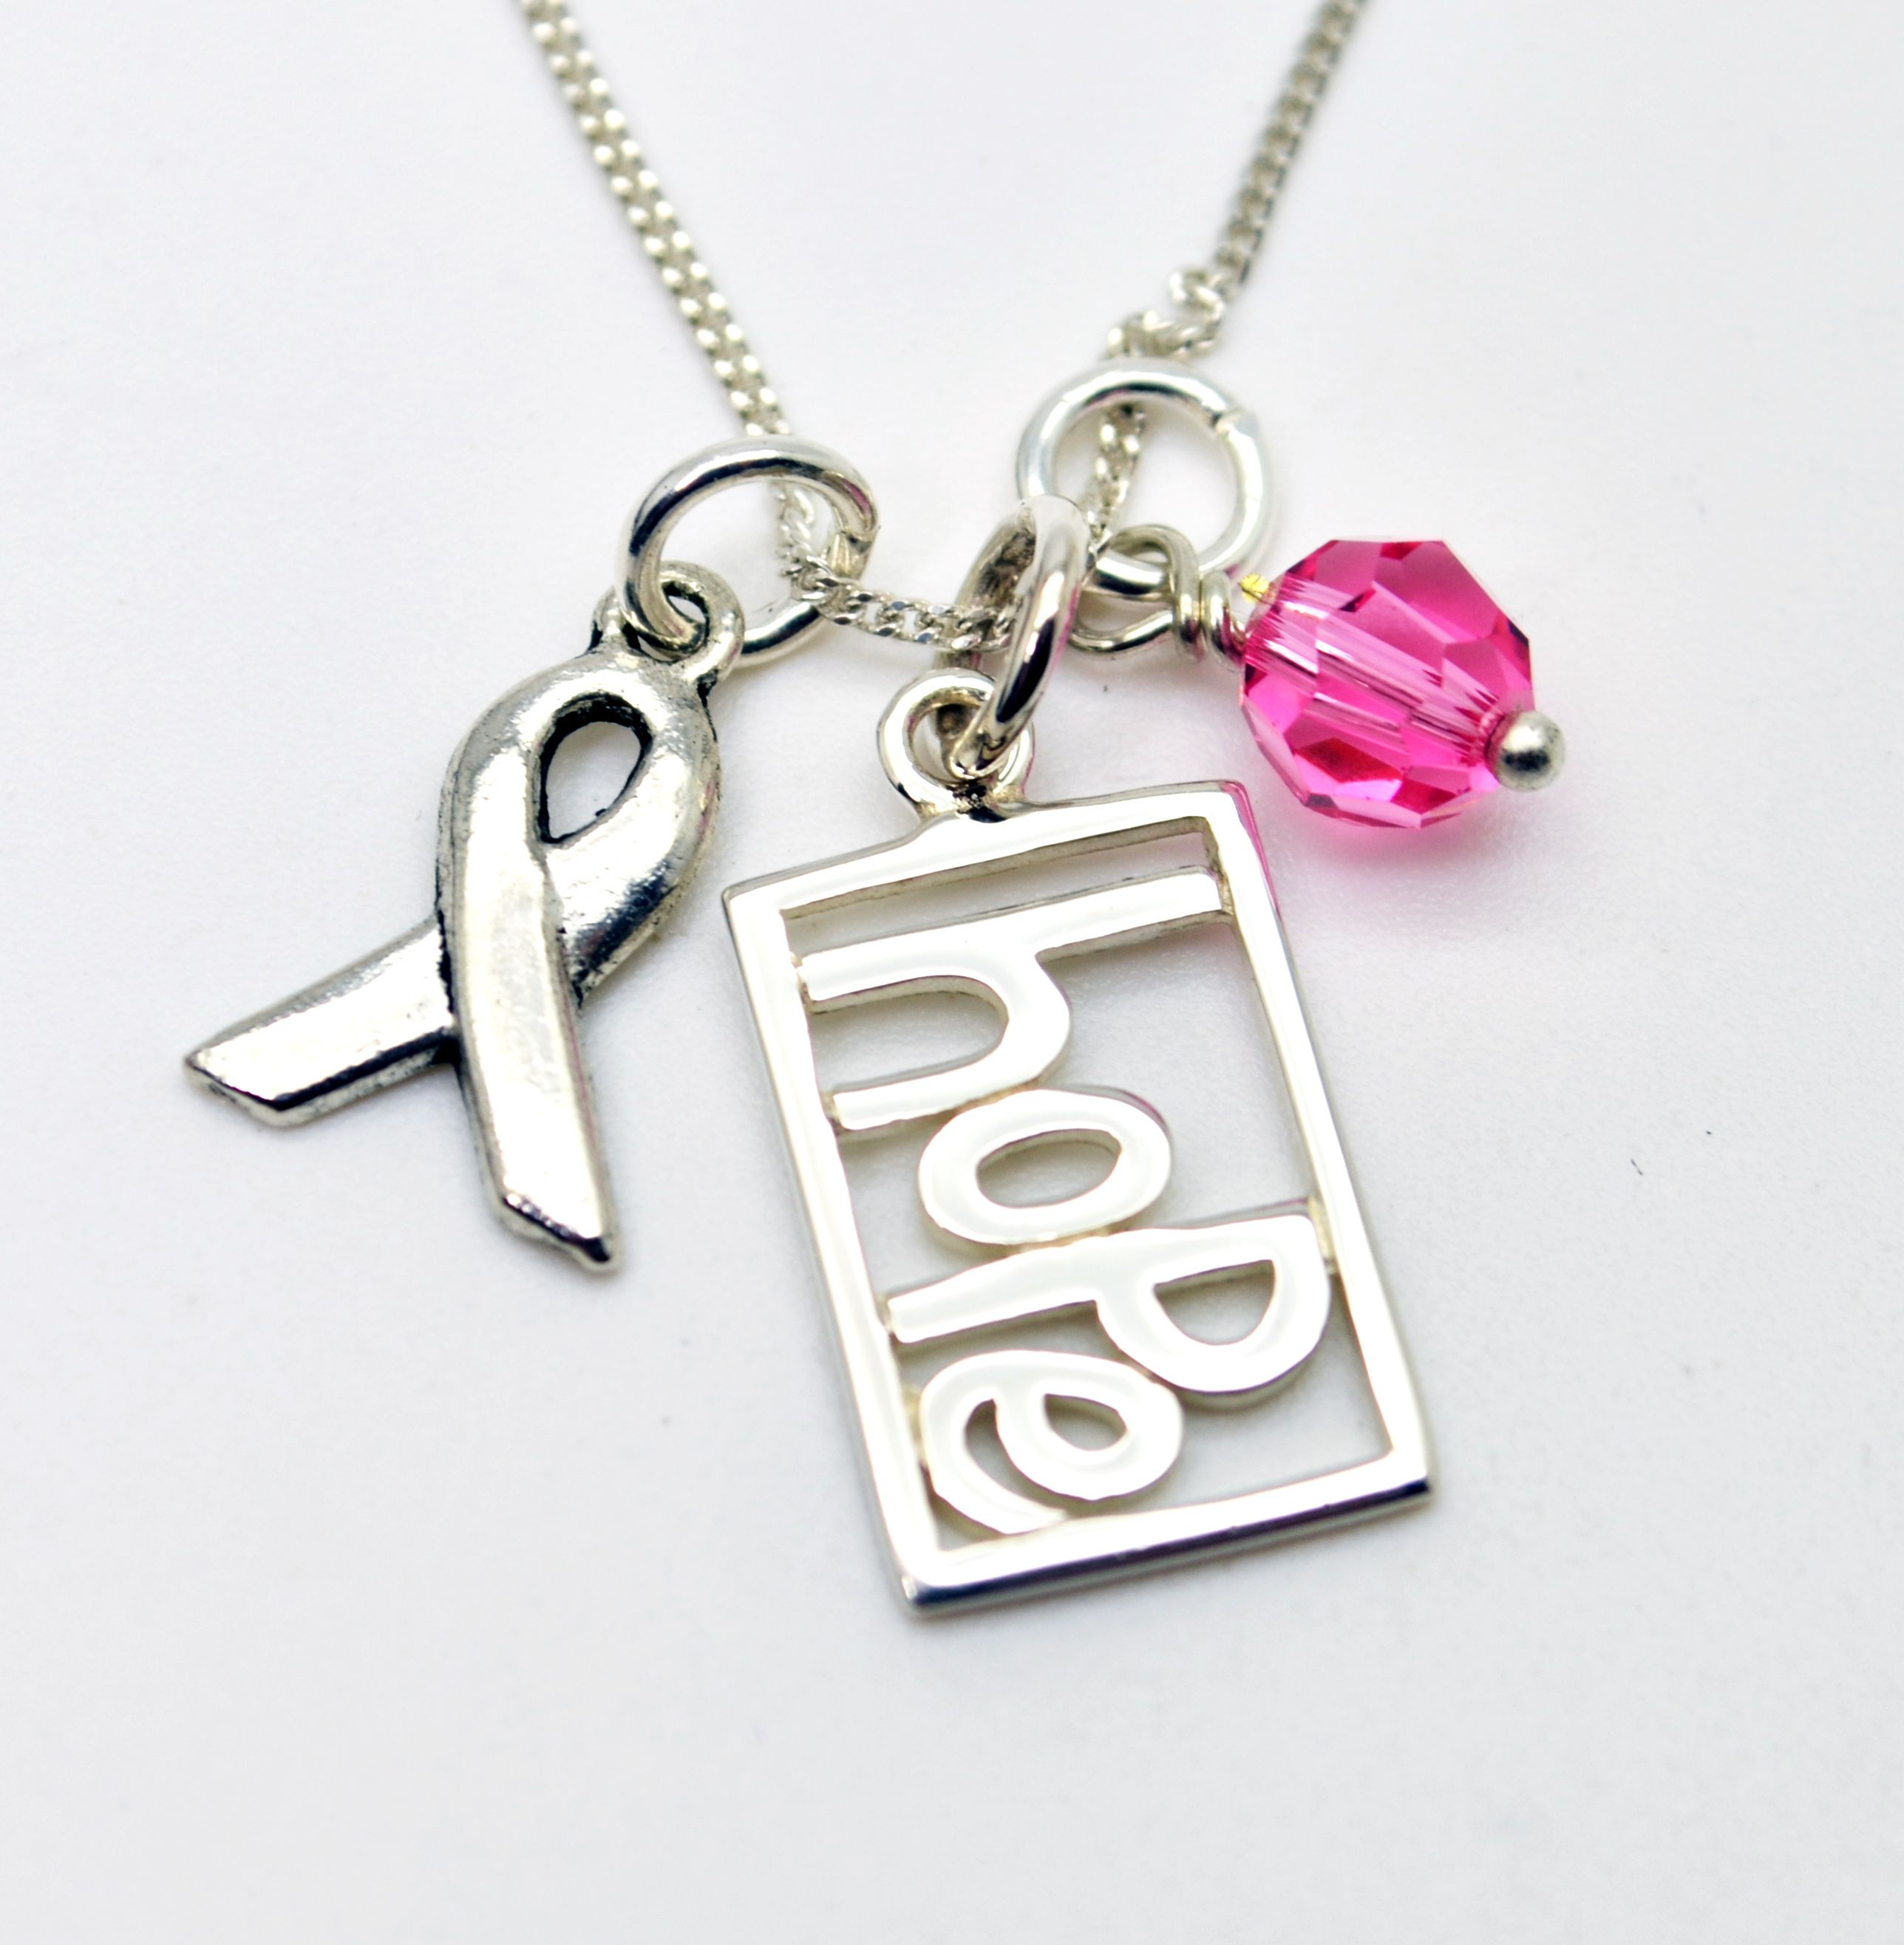 Hope Necklace:: Breast Cancer Awareness Hope Necklace - Personalized Jewelry - Ribbon Charm, Breast Cancer, Pink #Breast #Cancer #Awareness #Jewelry